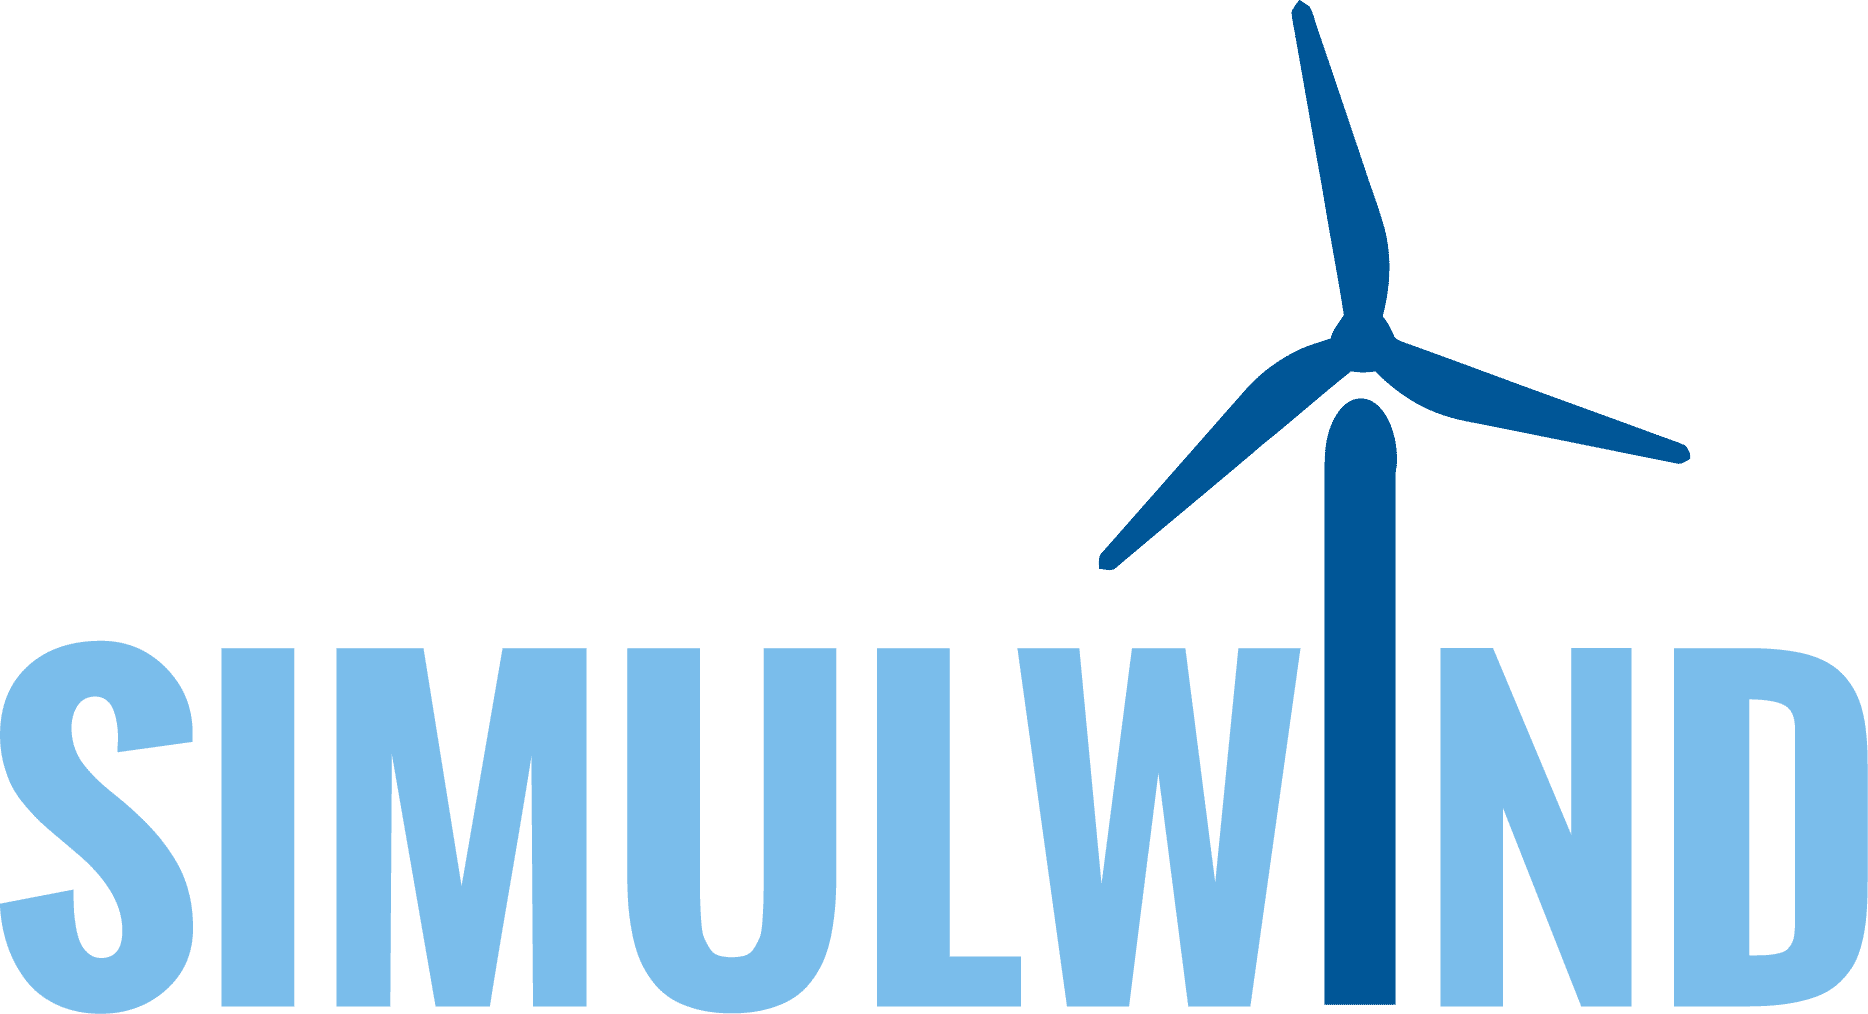 The TowerPower Europe-wide consortium has partnered to create a Continuous Structural Monitoring (CSM) system that will provide real-time structural analysis of the wind turbine tower structure through the application of a novel integration of NDT techniques and advanced electronic communication.